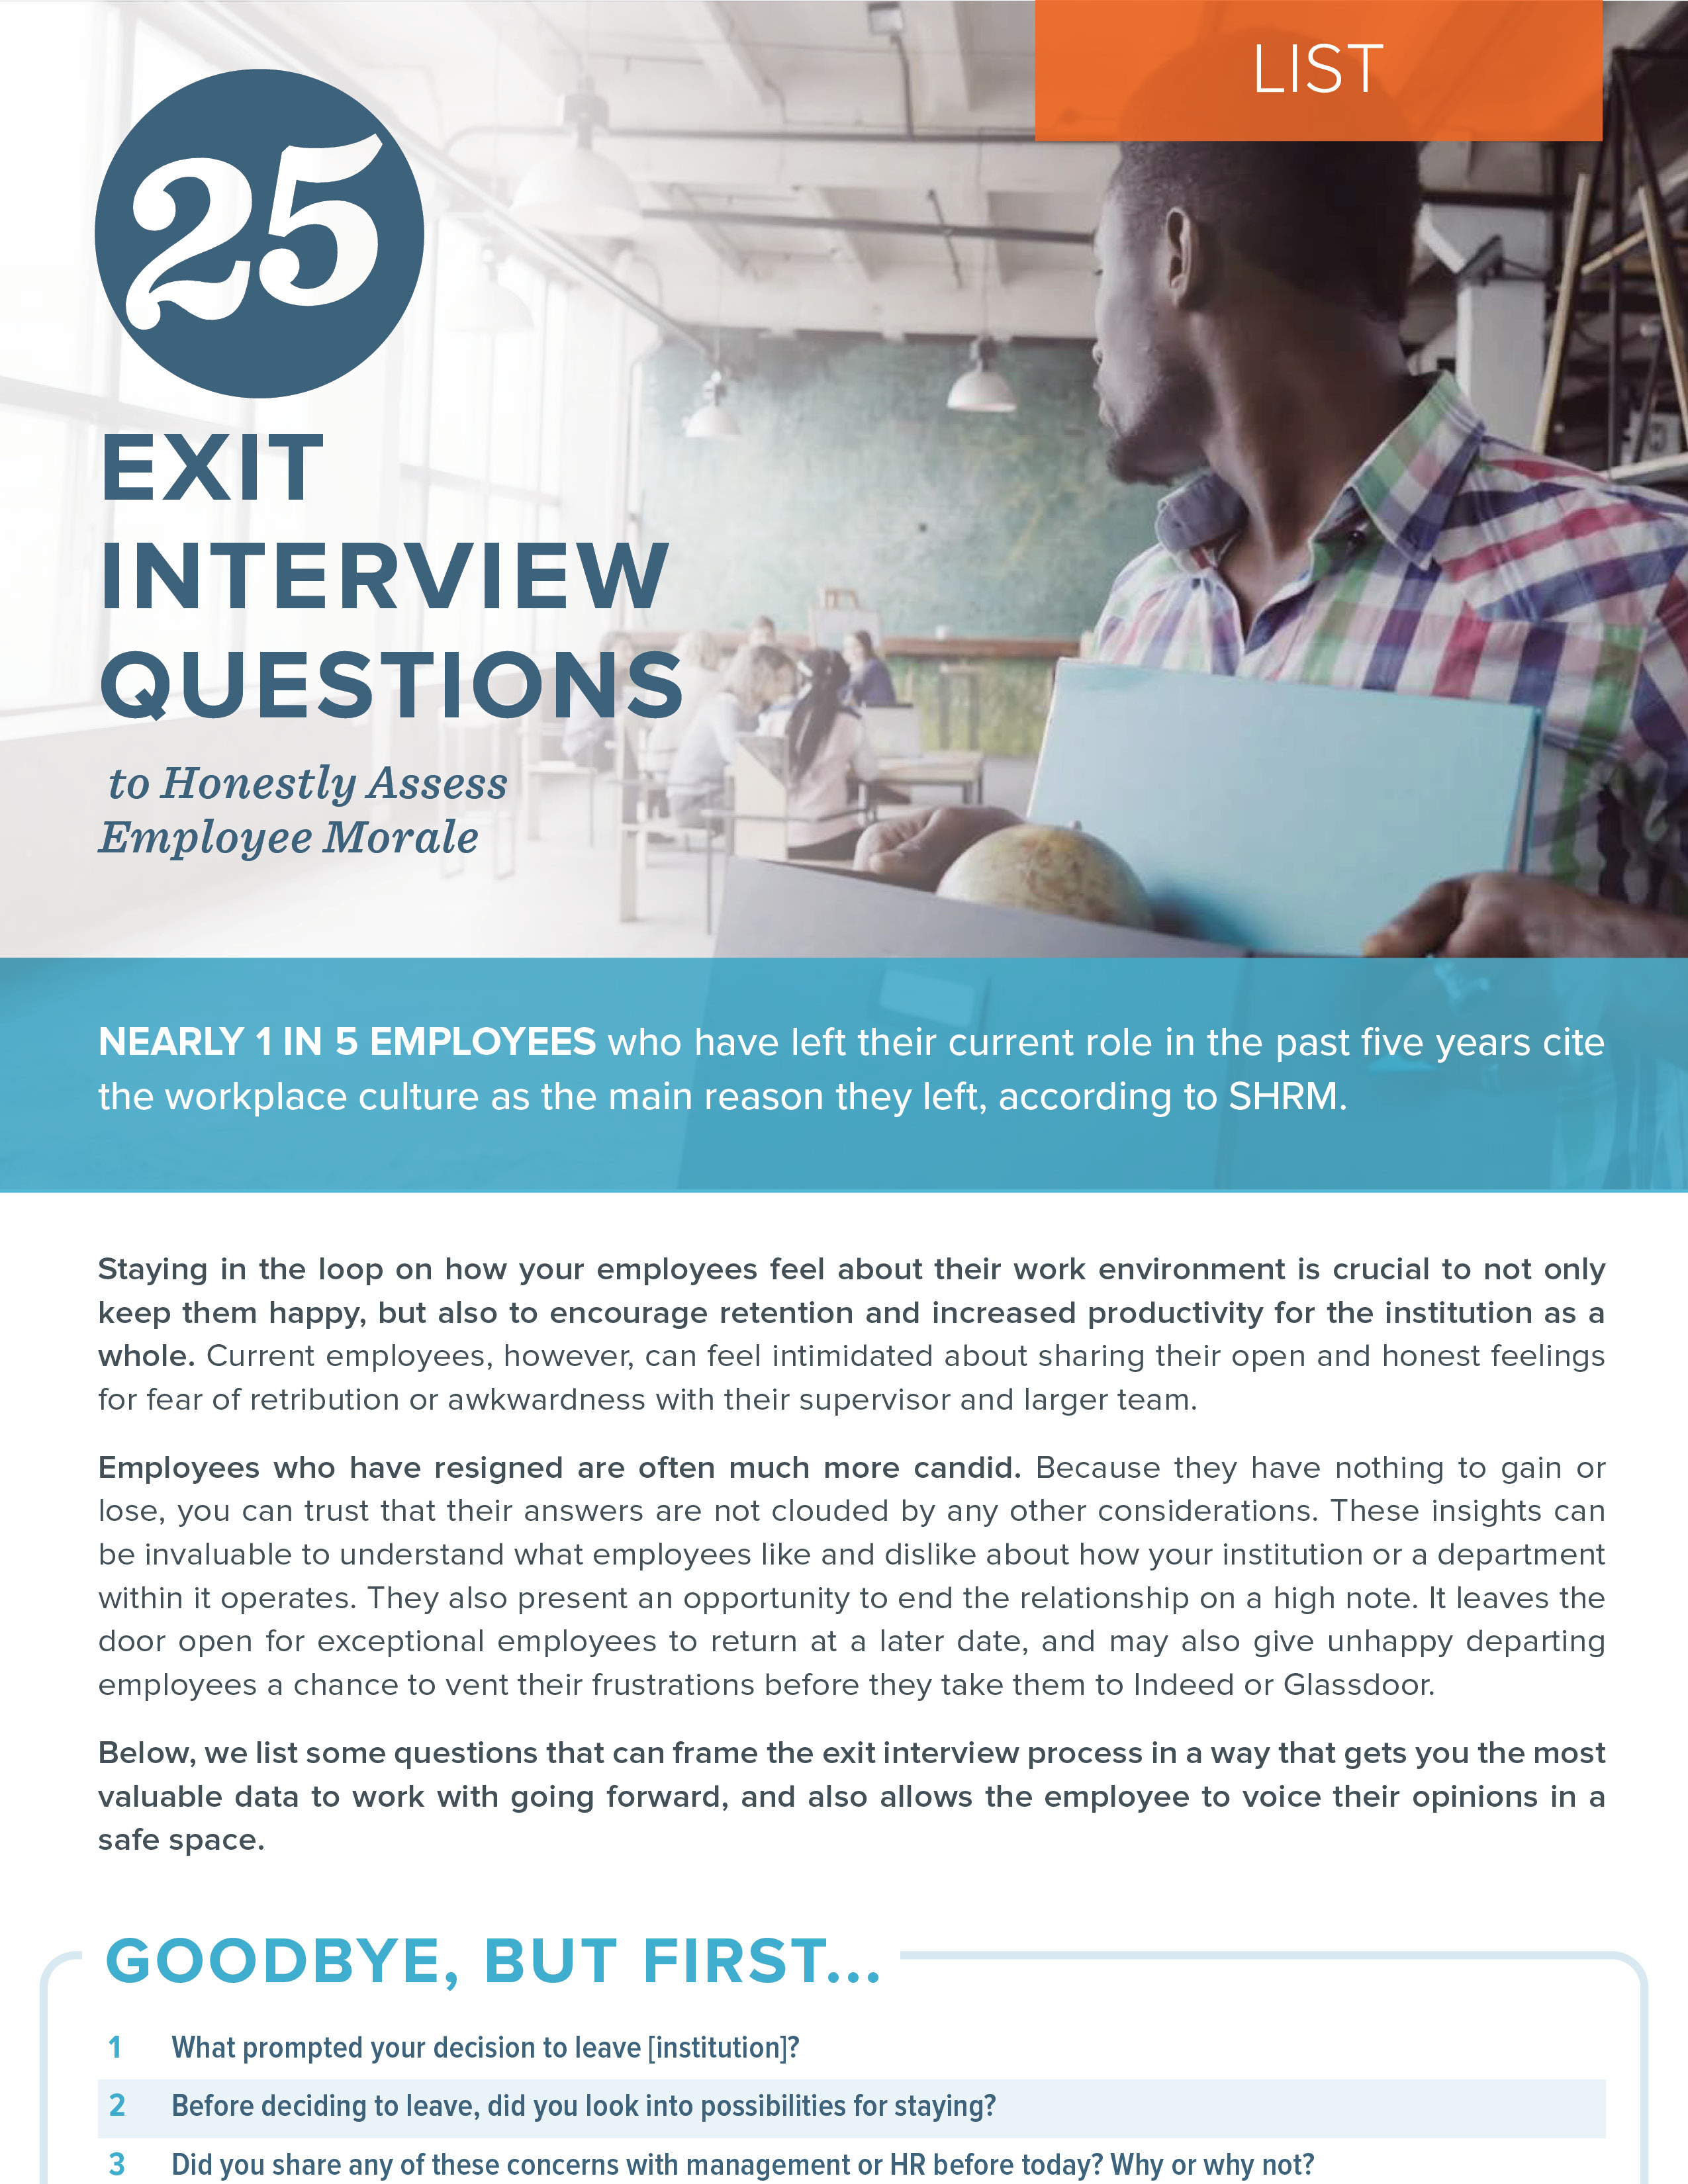 NEOED 25 Exit Interview Questions